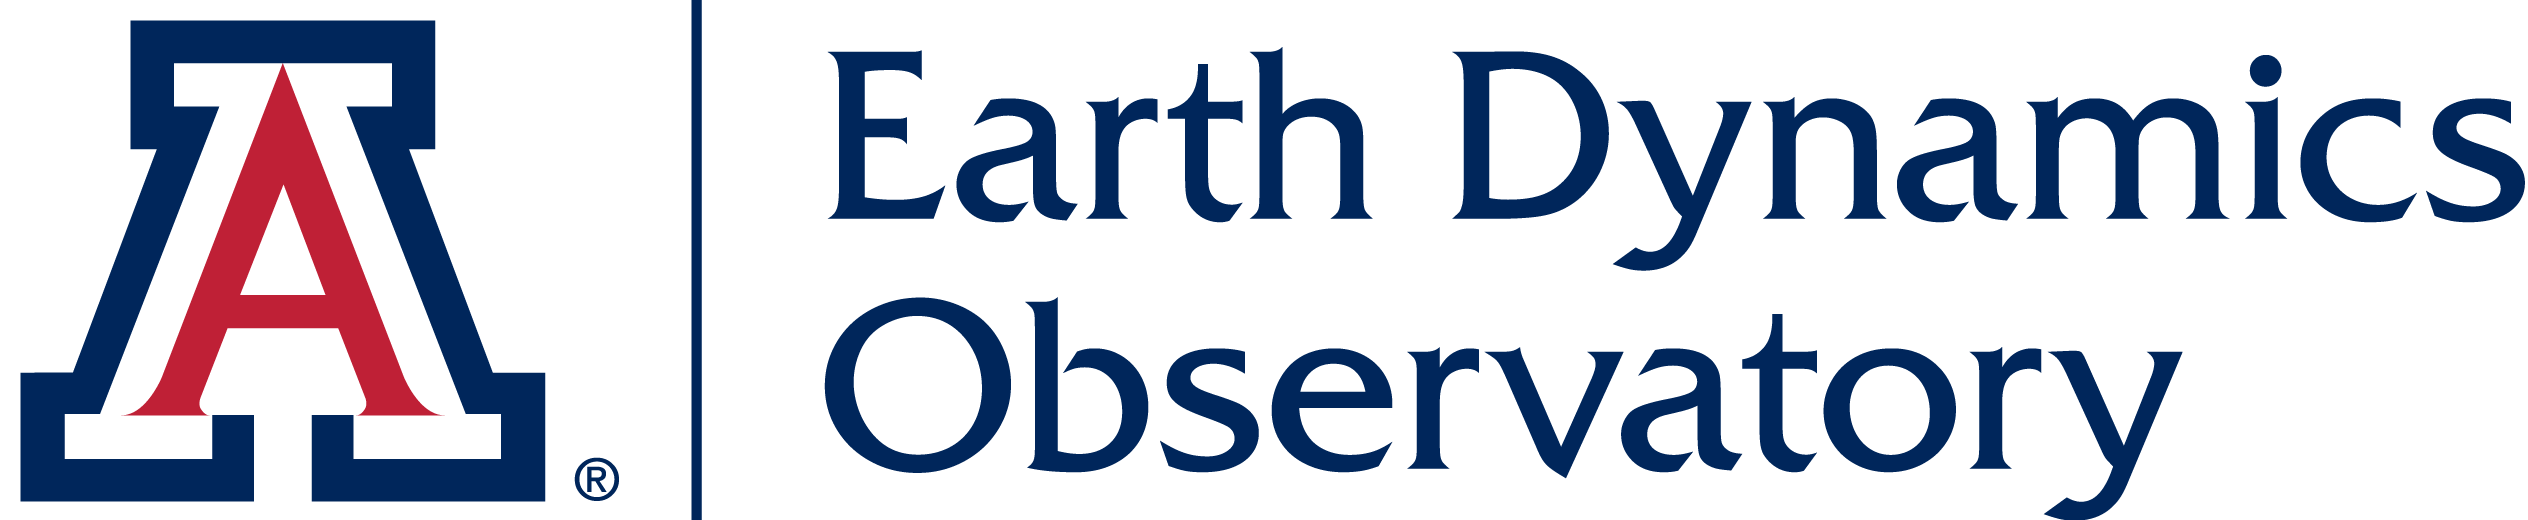 Earth Dynamics Observatory (EDO) | Home